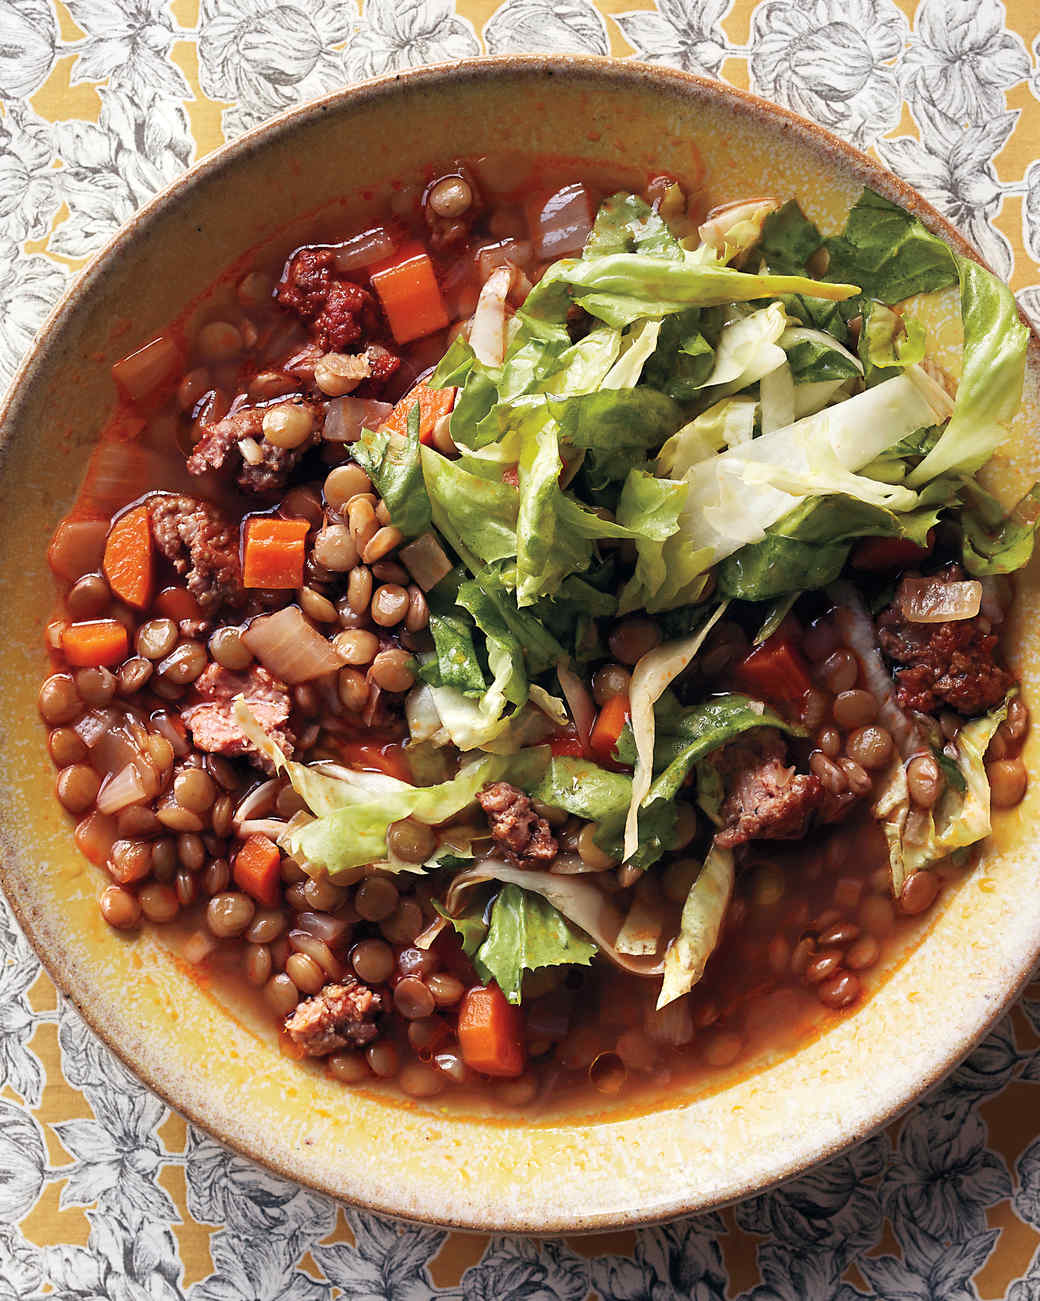 Spicy-Sausage and Lentil Stew With Escarole Salad Recipe ...